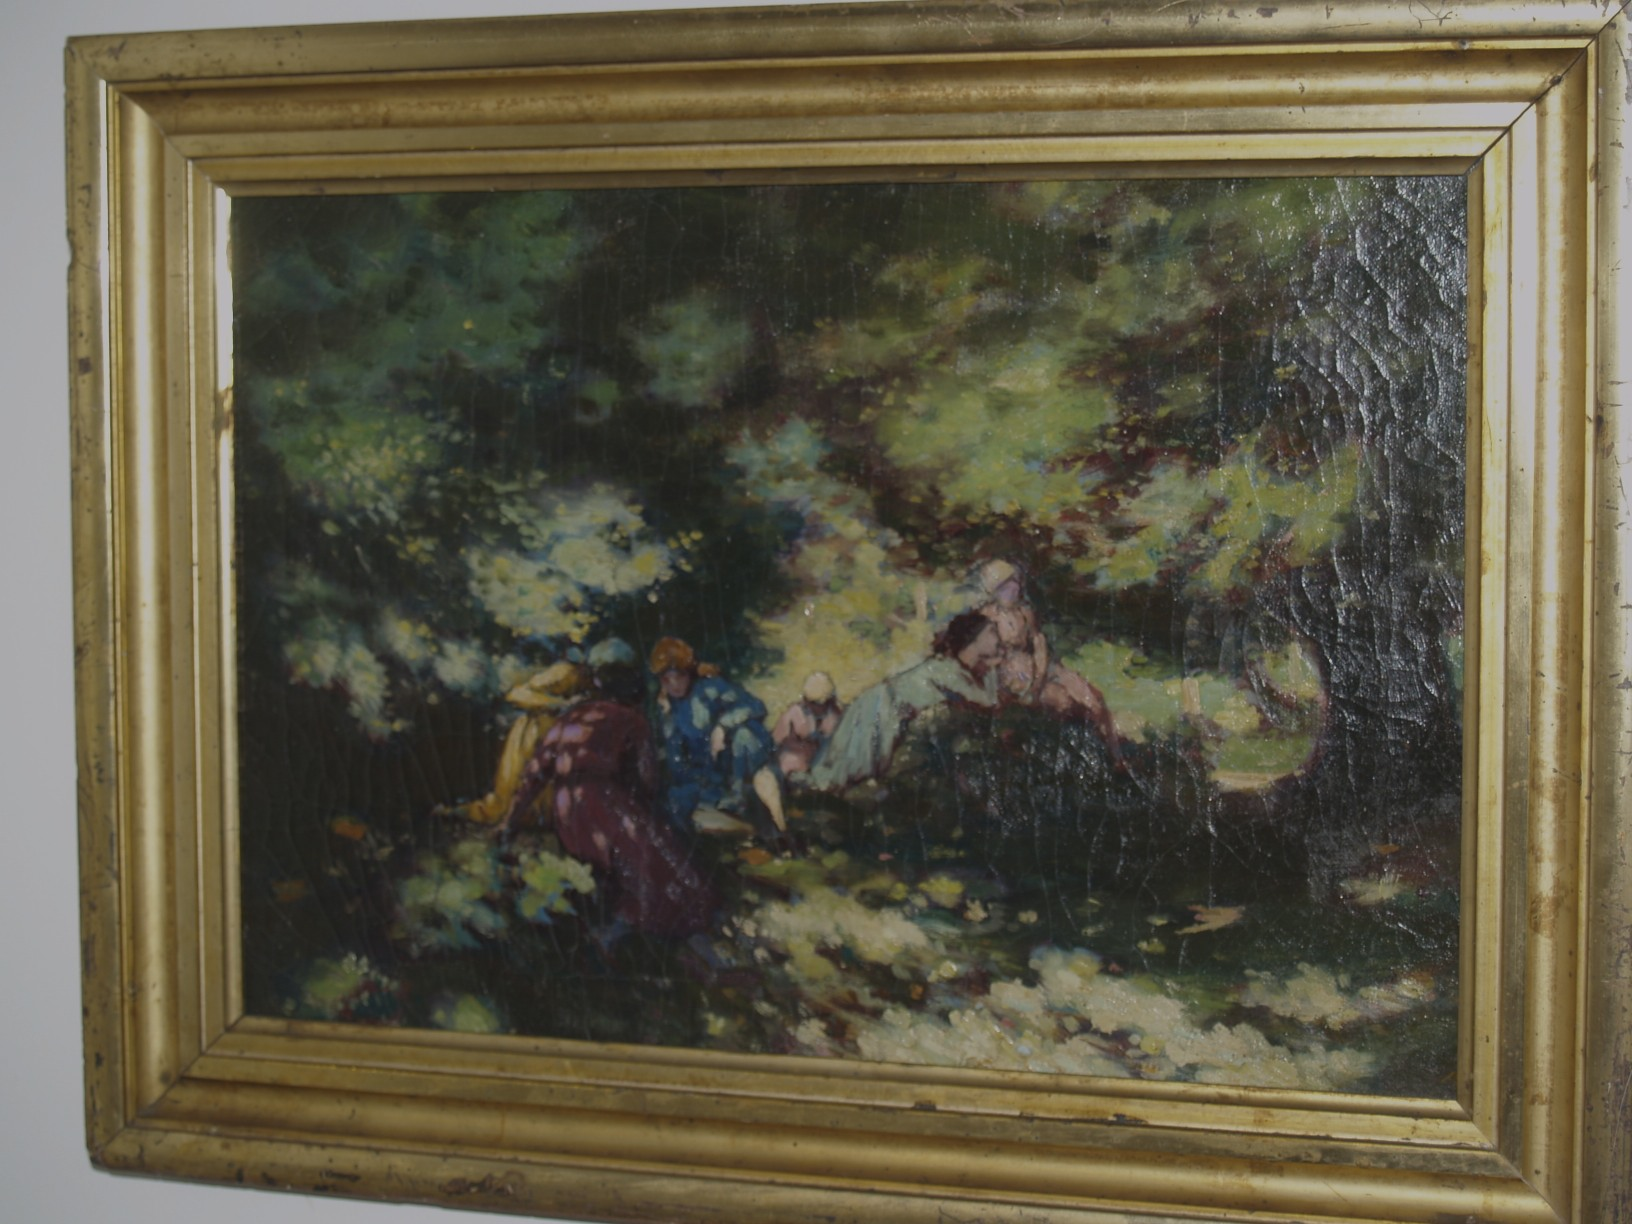 A. E. Russell oil painting